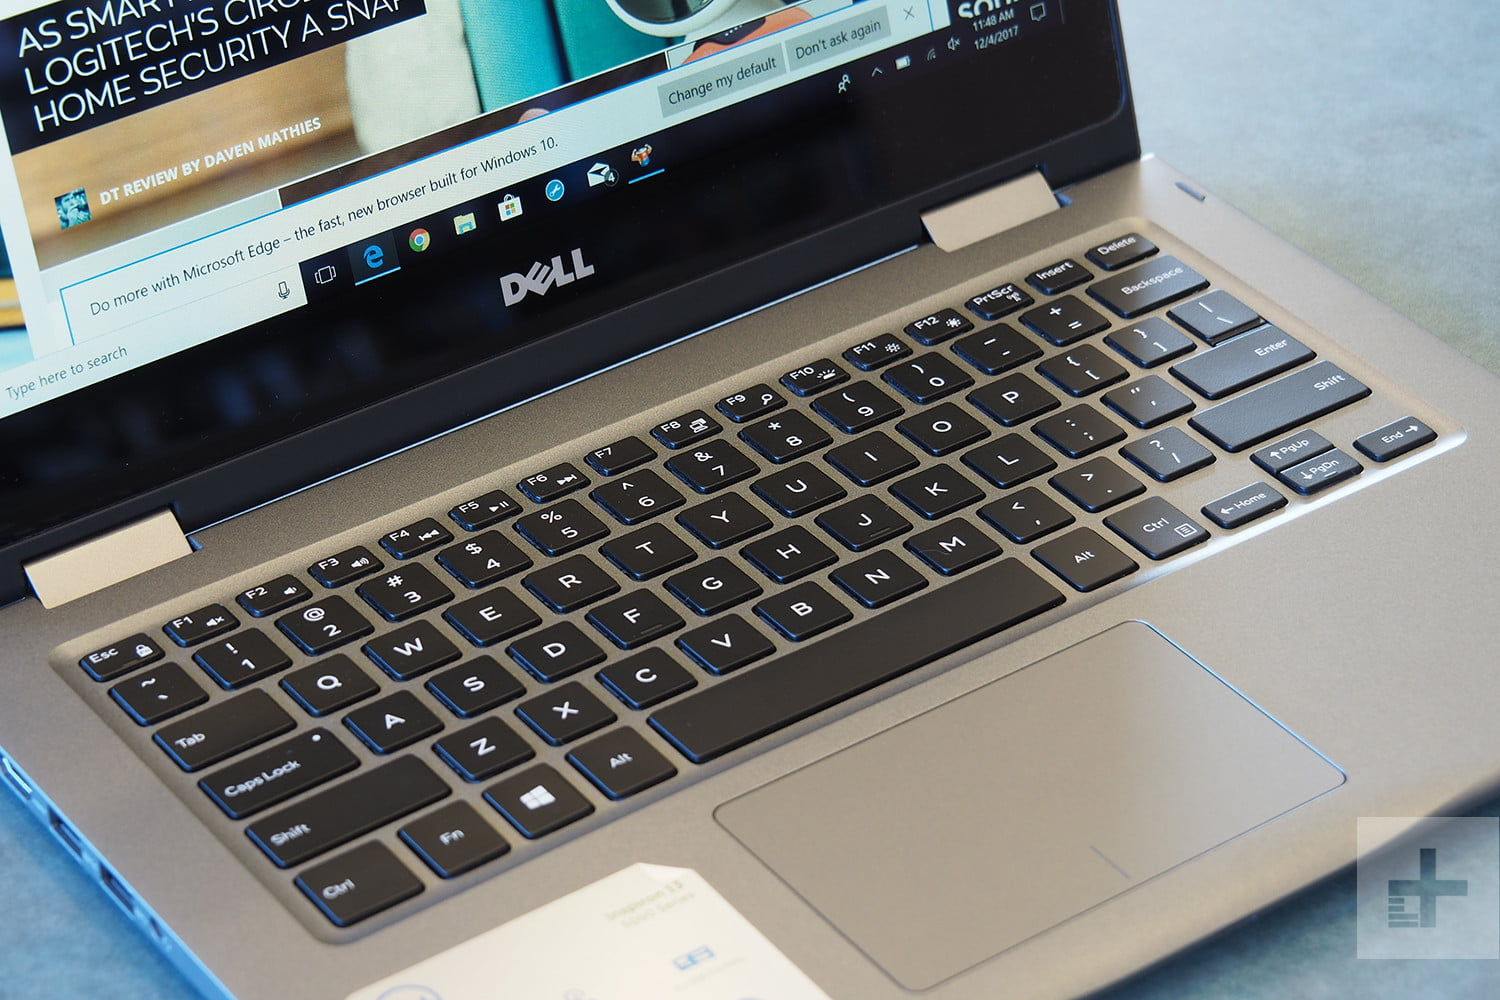 dell inspiron 13 5000 13 2 in 1 laptop review